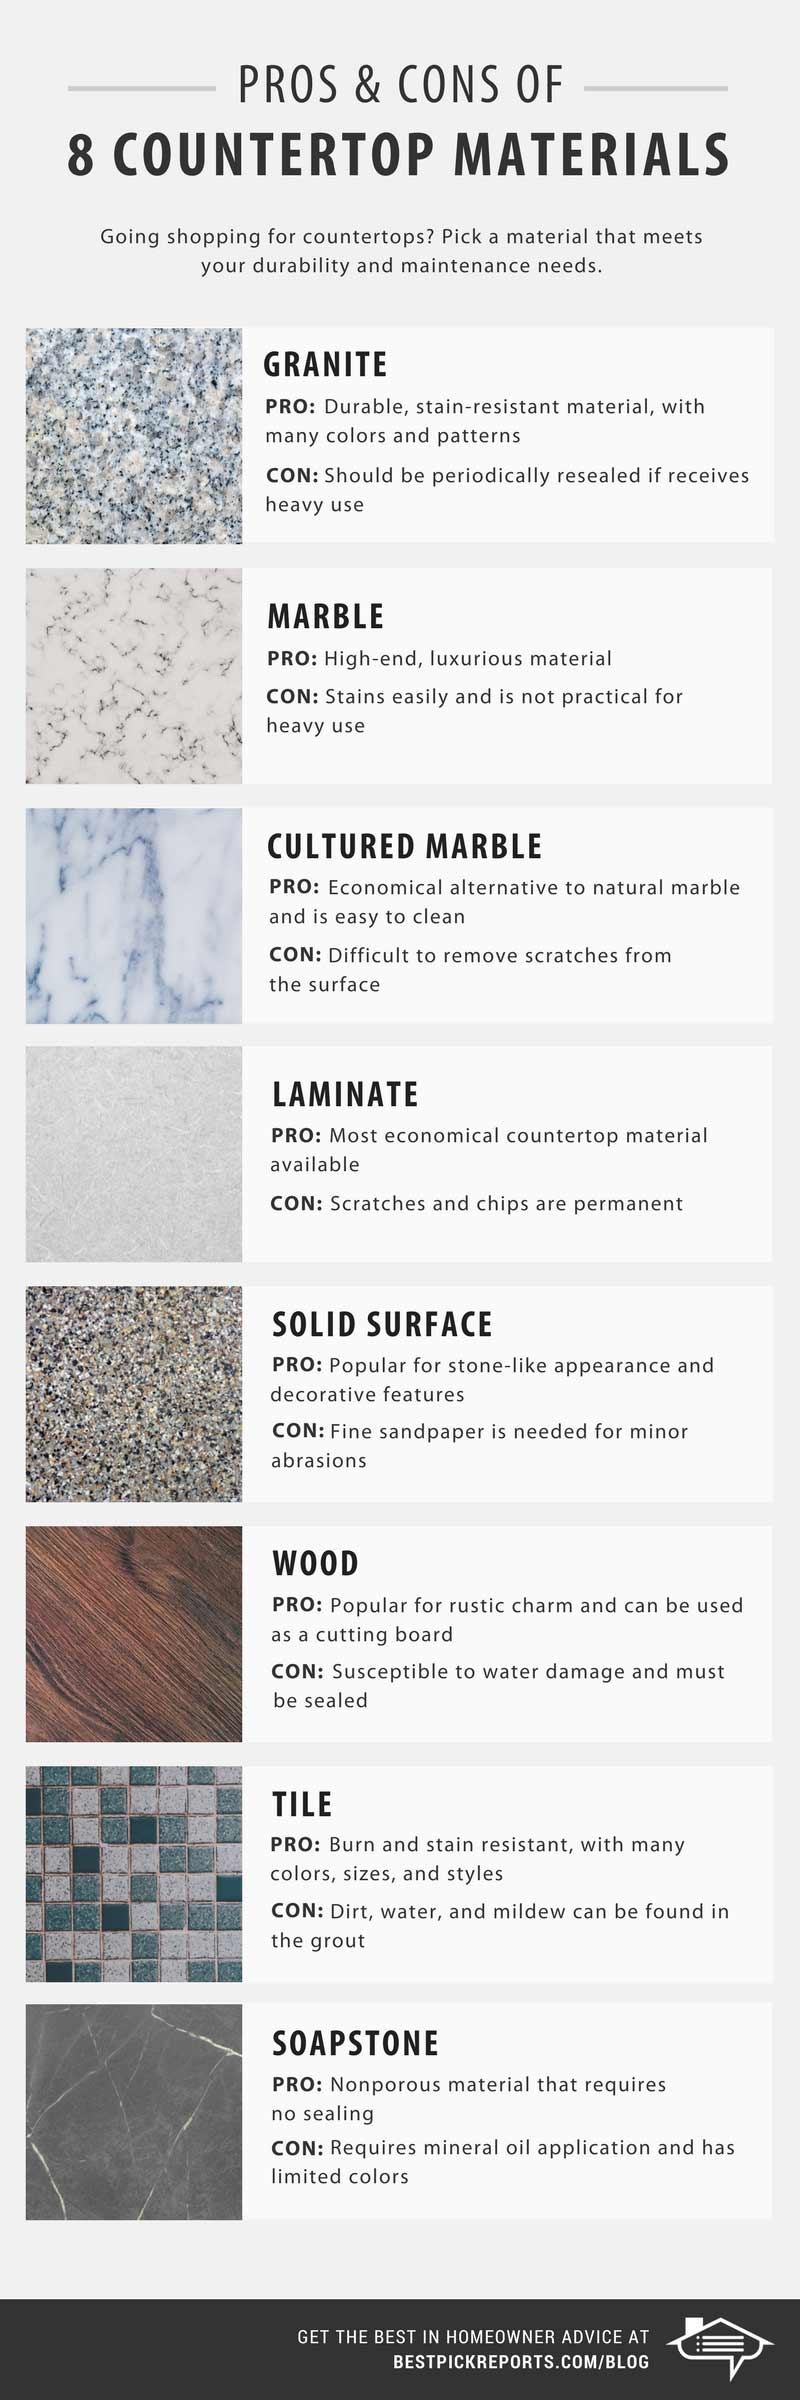 Pros and cons of 8 countertop materials infographic